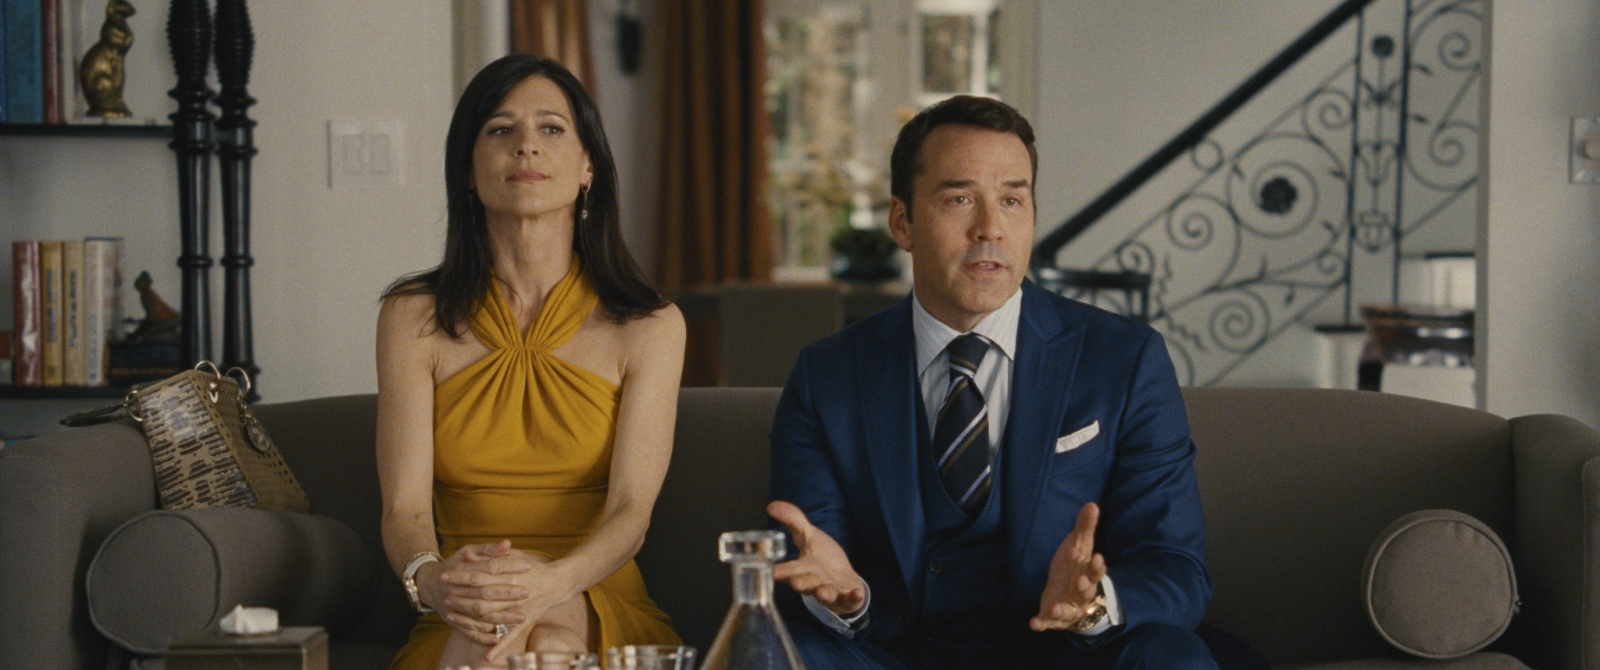 Perrey Reeves and Jeremy Piven in Entourage